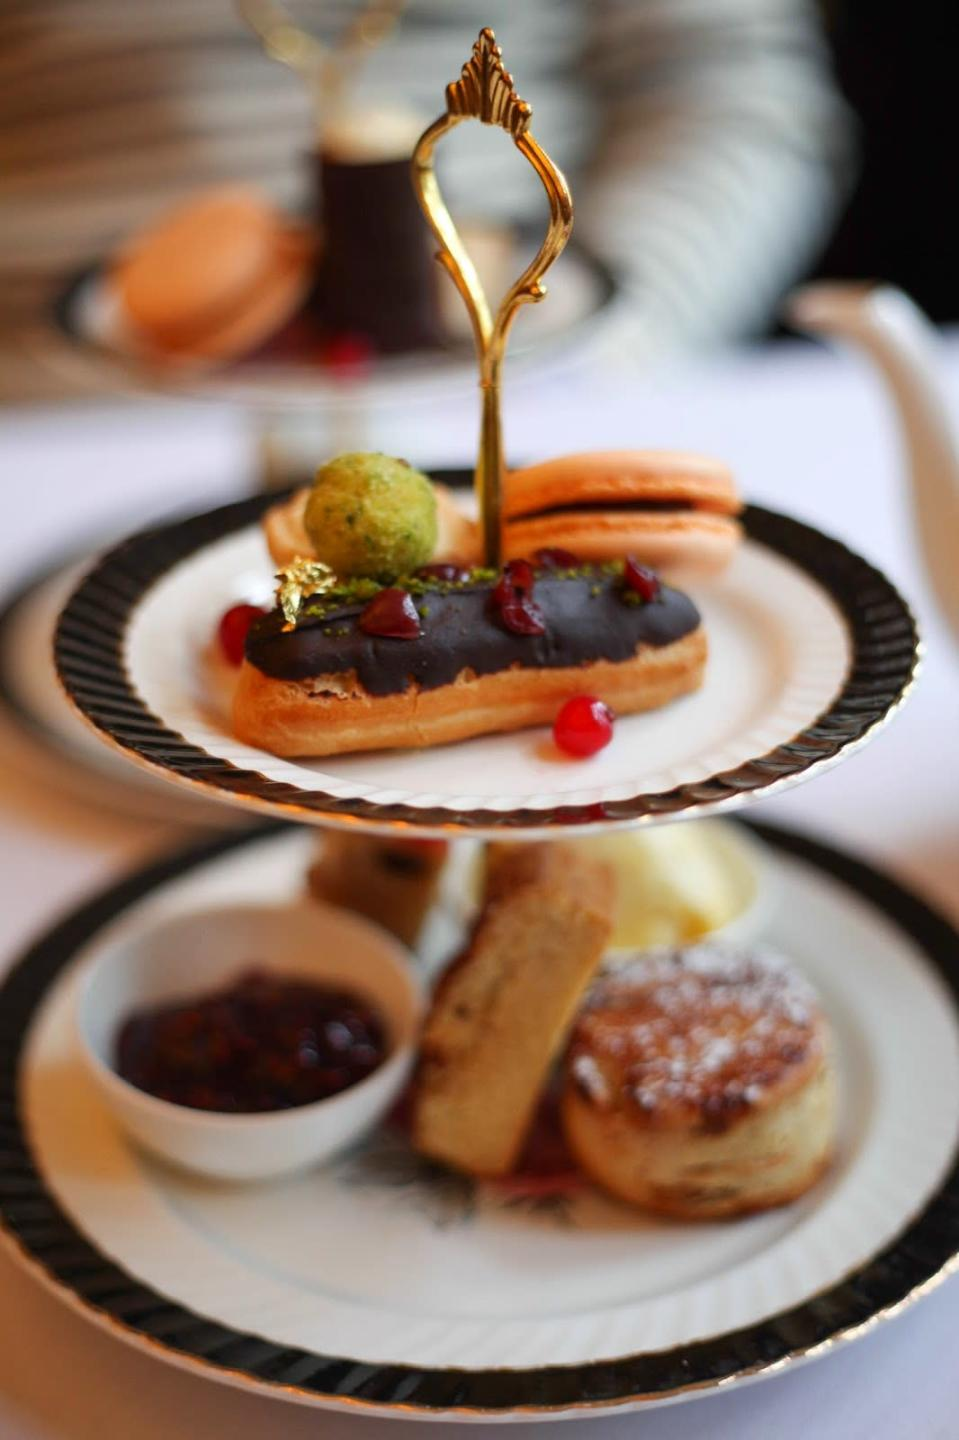 "<p>This is a refined take on tea, with delicate pastries and handmade morsels served on bone china, in a grand Victorian dining room. </p><p><b><a rel=""nofollow noopener"" href=""http://parkhouserestaurant.co.uk/"" target=""_blank"" data-ylk=""slk:Parkhouserestaurant.co.uk"" class=""link rapid-noclick-resp"">Parkhouserestaurant.co.uk</a></b></p>"